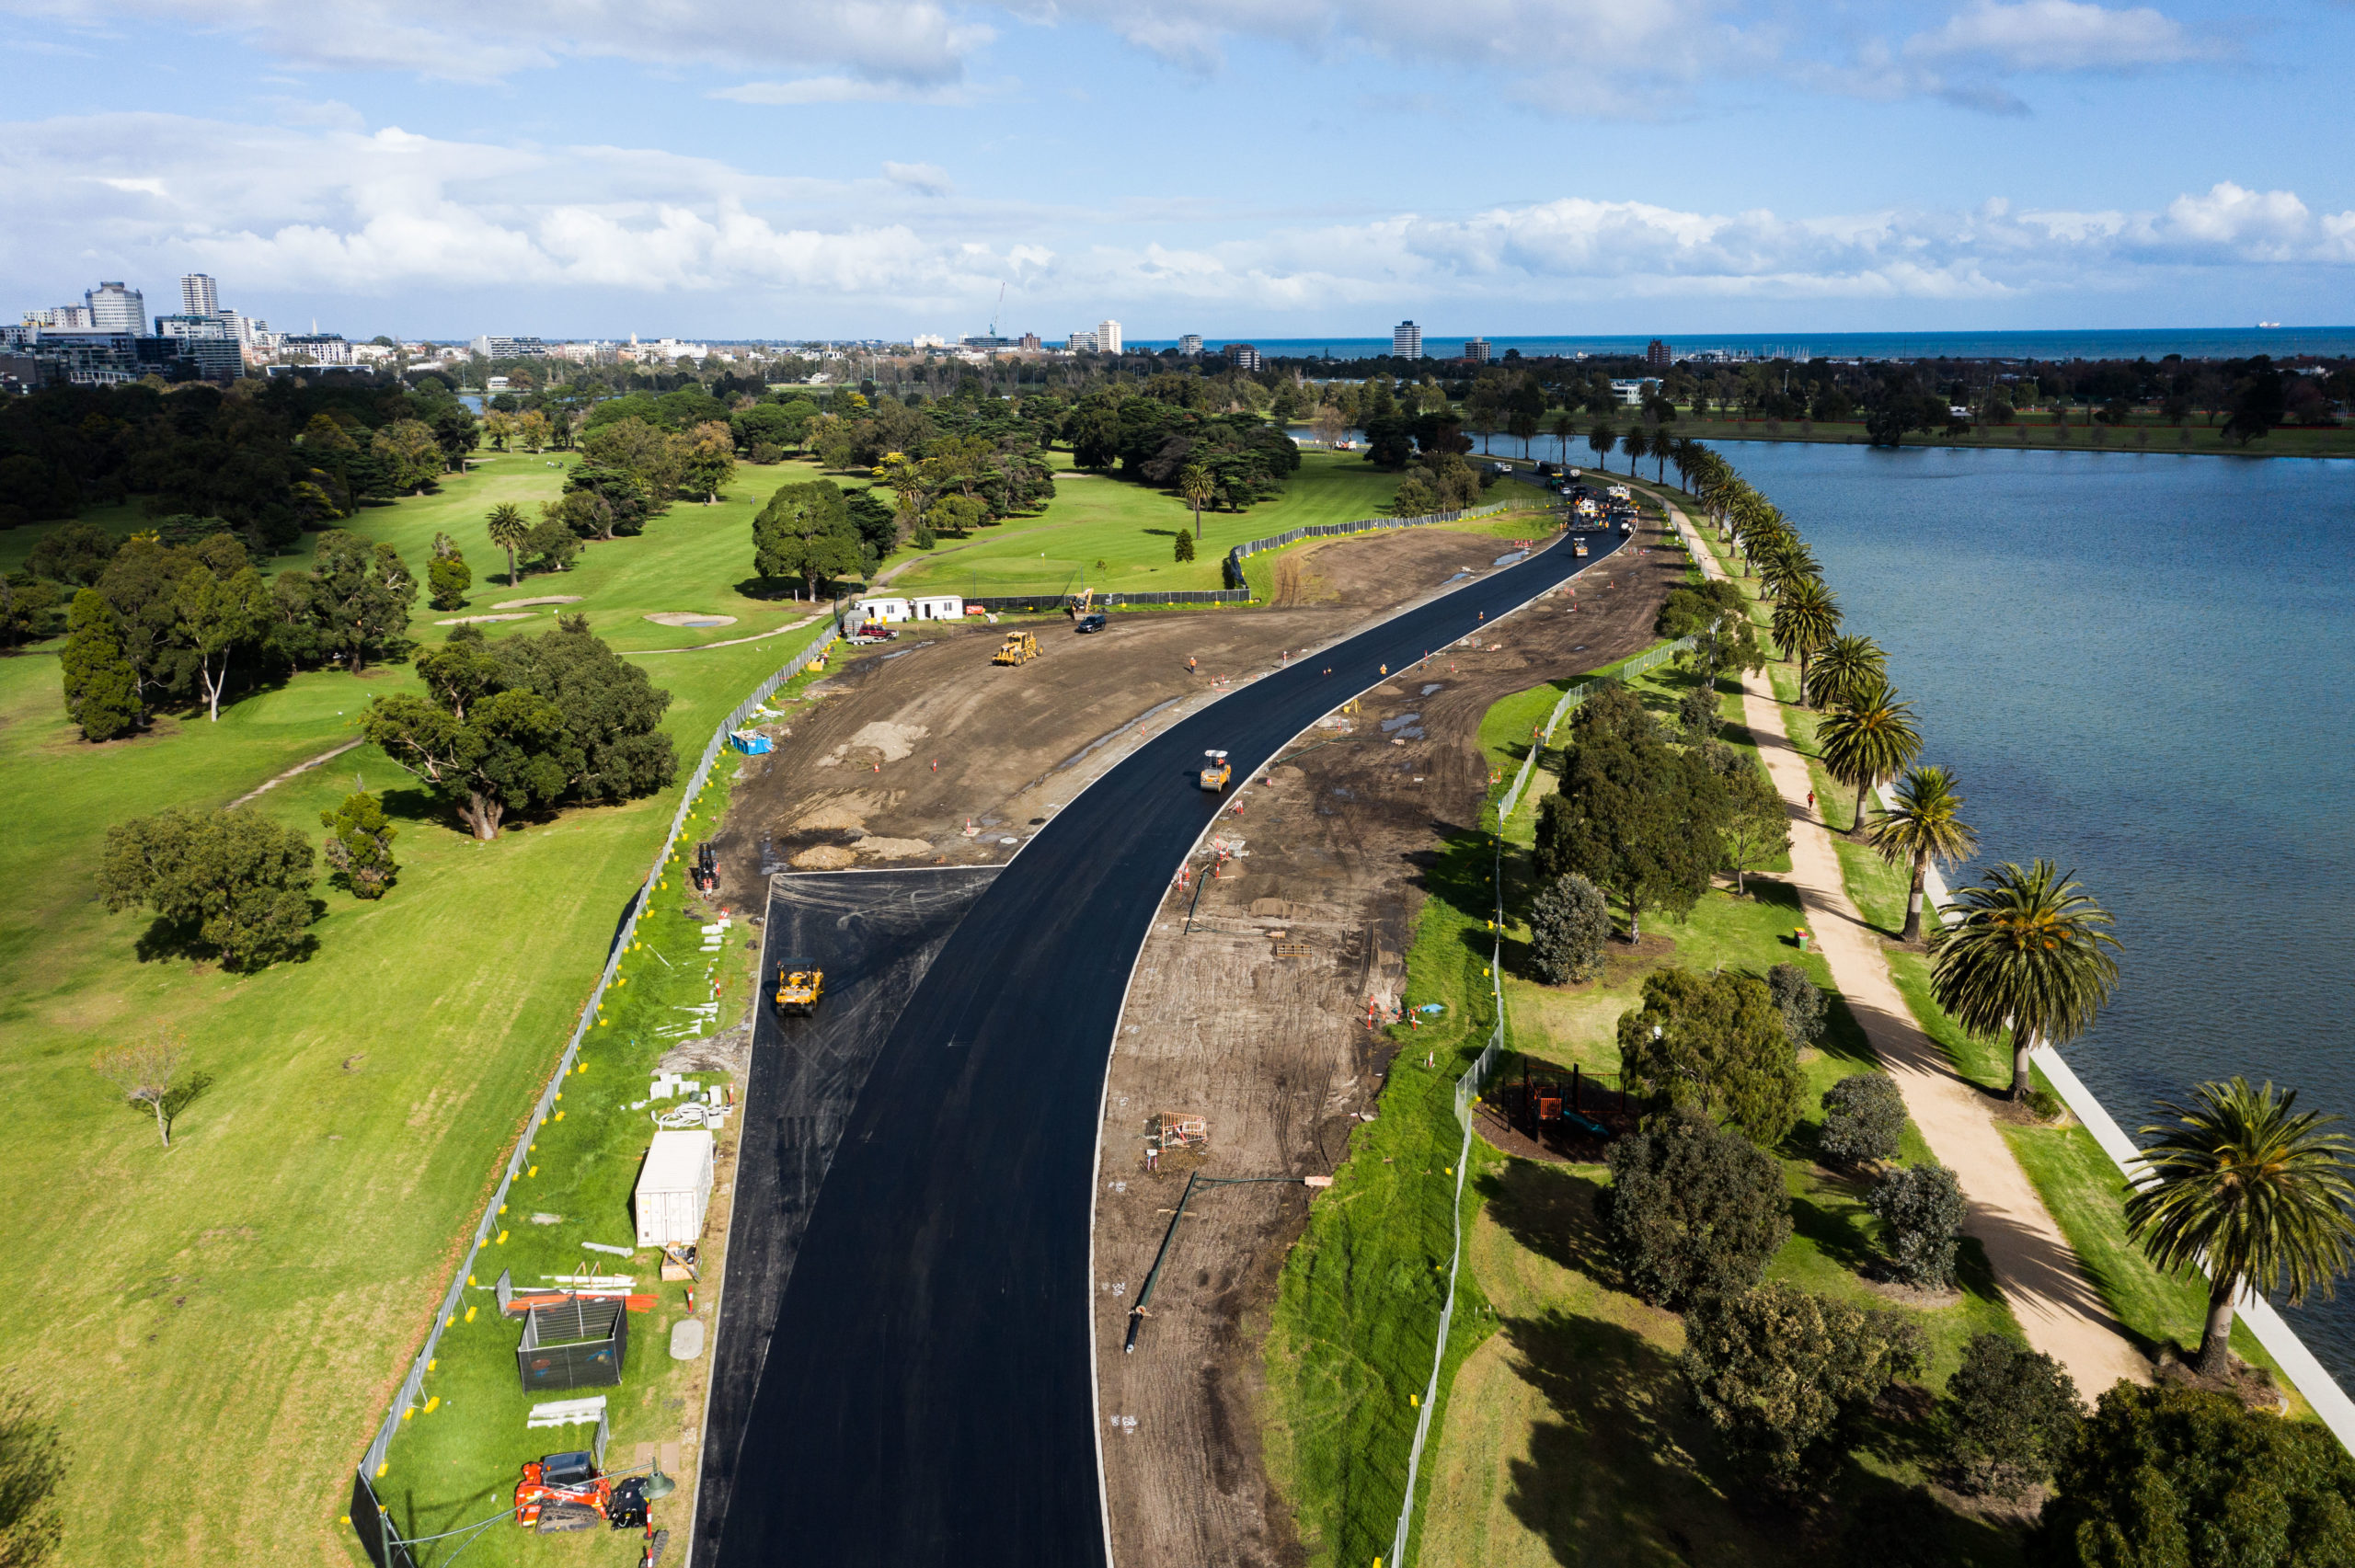 Drivers in favour of F1 circuit changes - Speedcafe